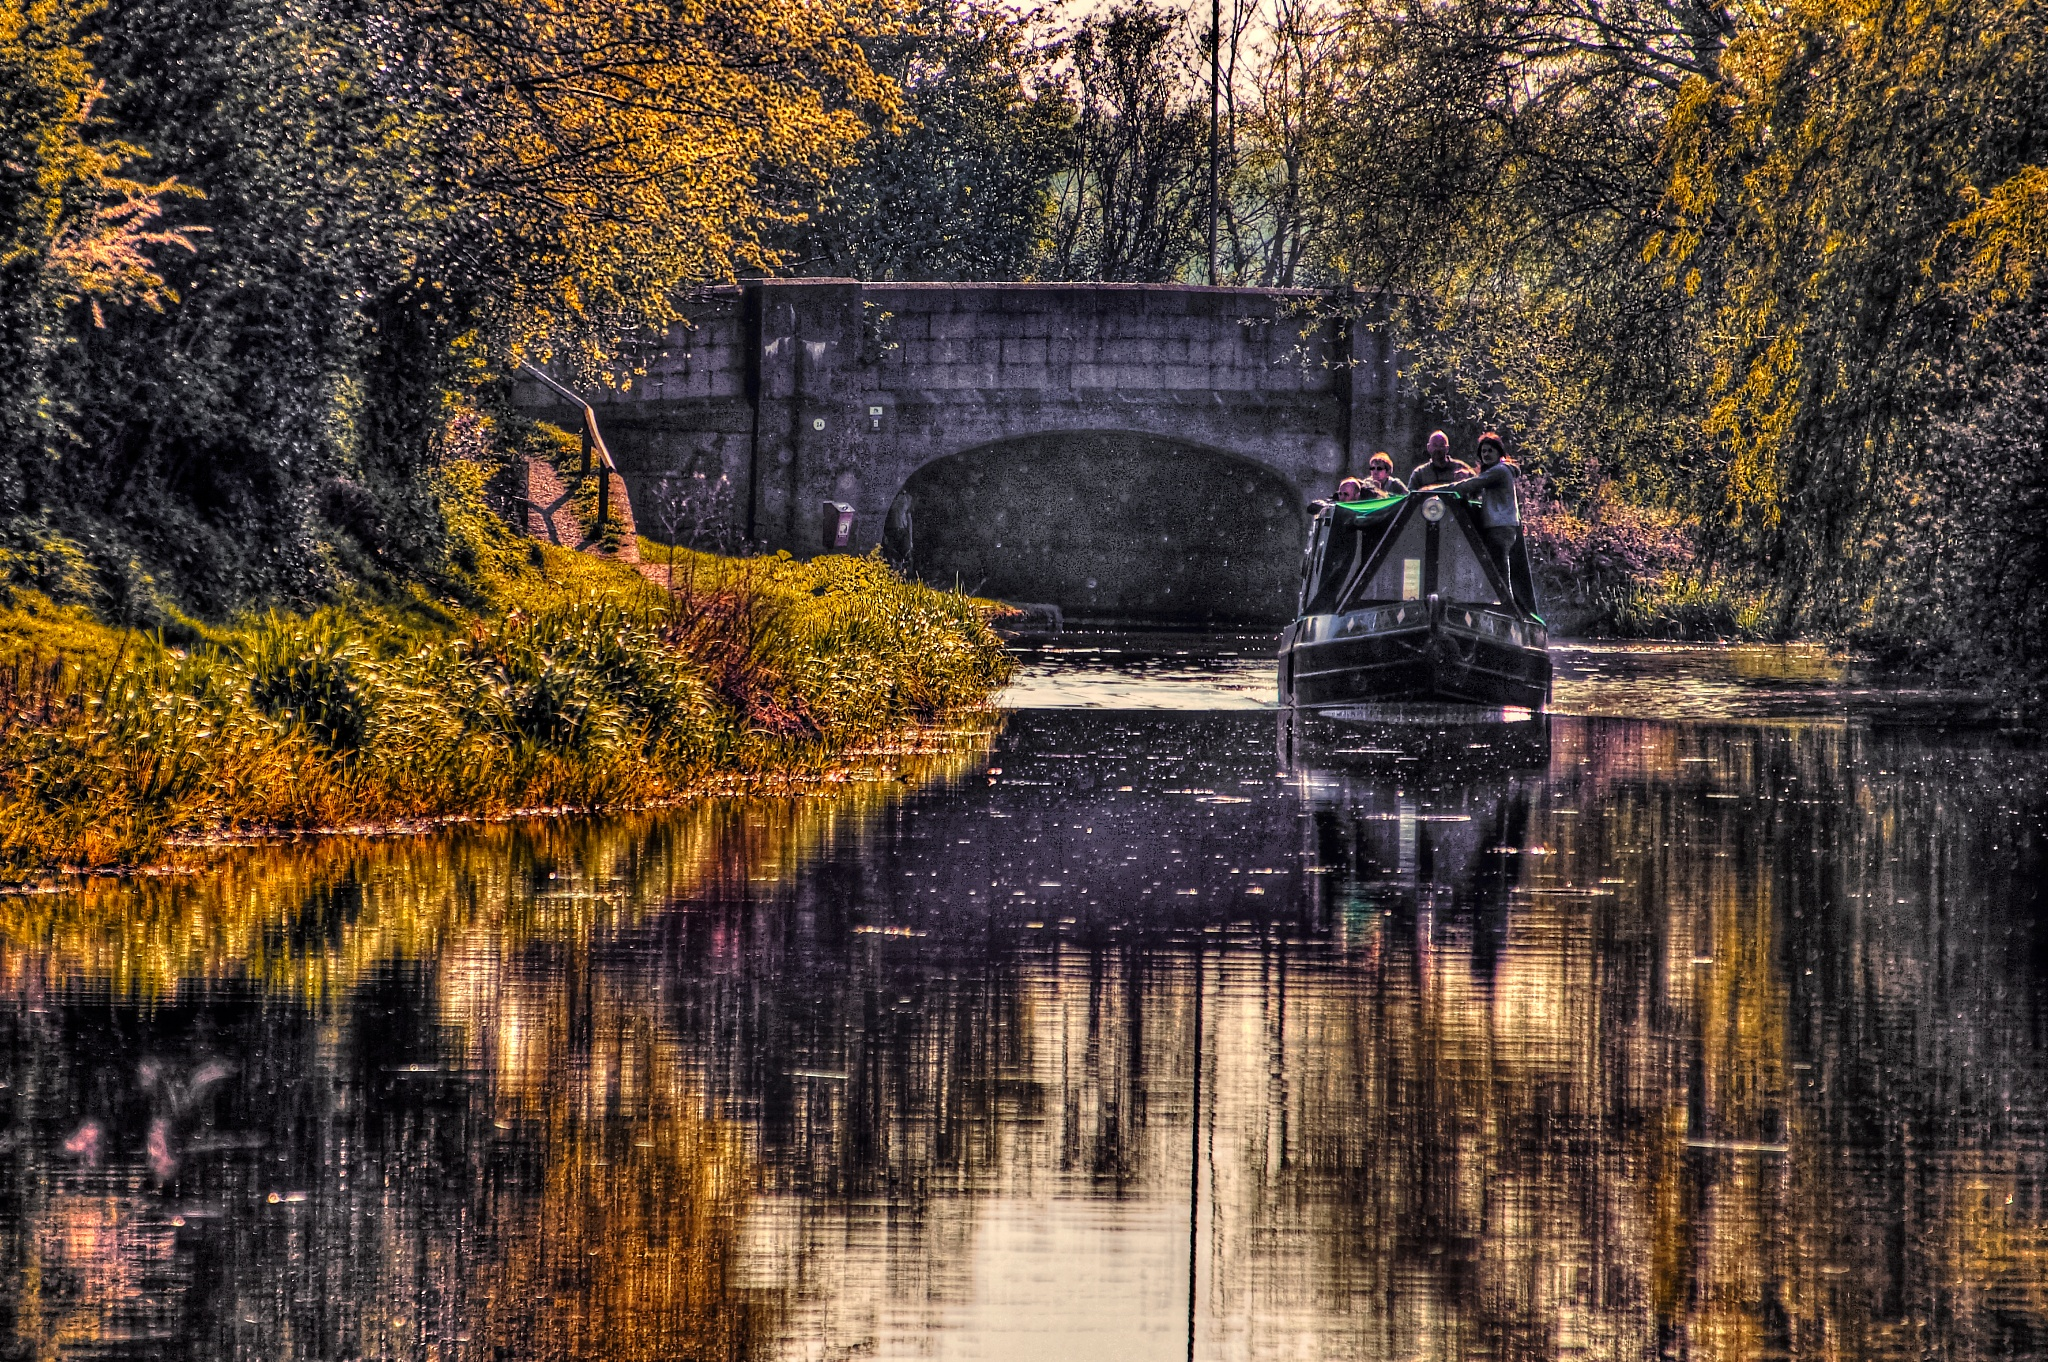 Lazy Evening on the Canal by stephen.harding.735